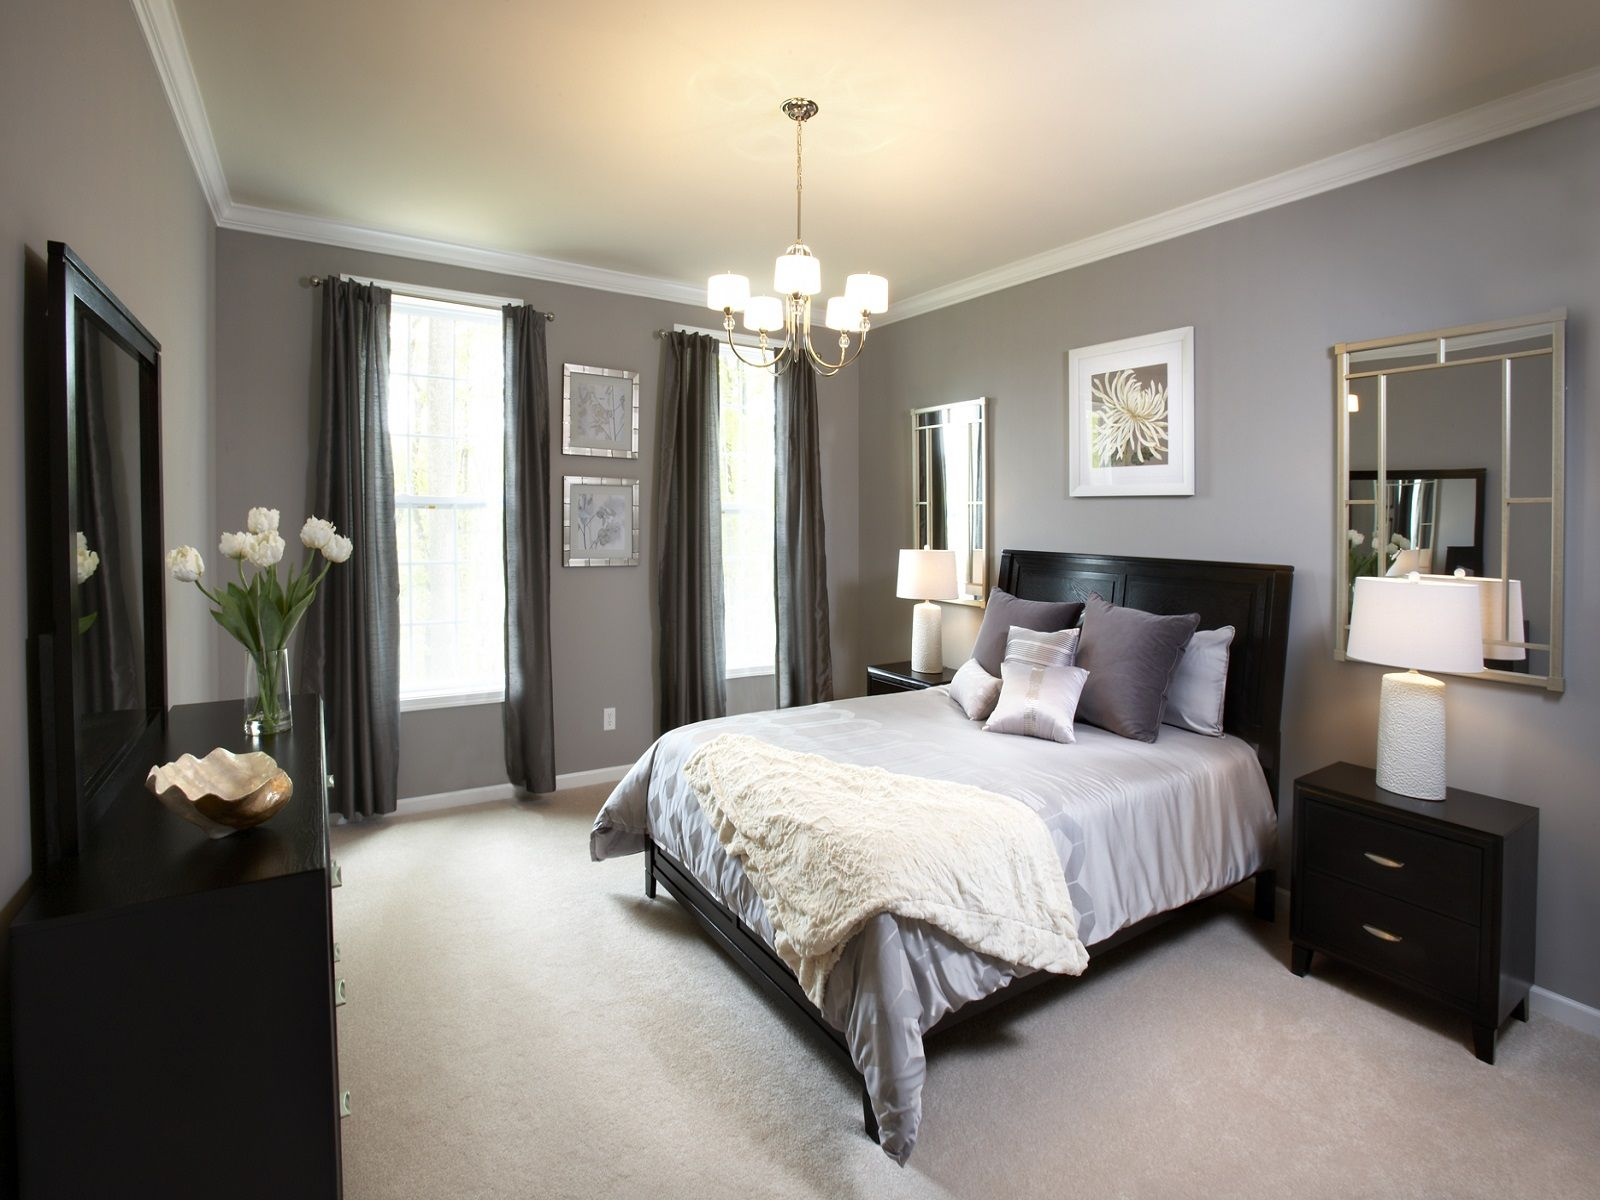 Wall Colour Inspiration: Black Bedroom Ideas, Inspiration For Master Bedroom